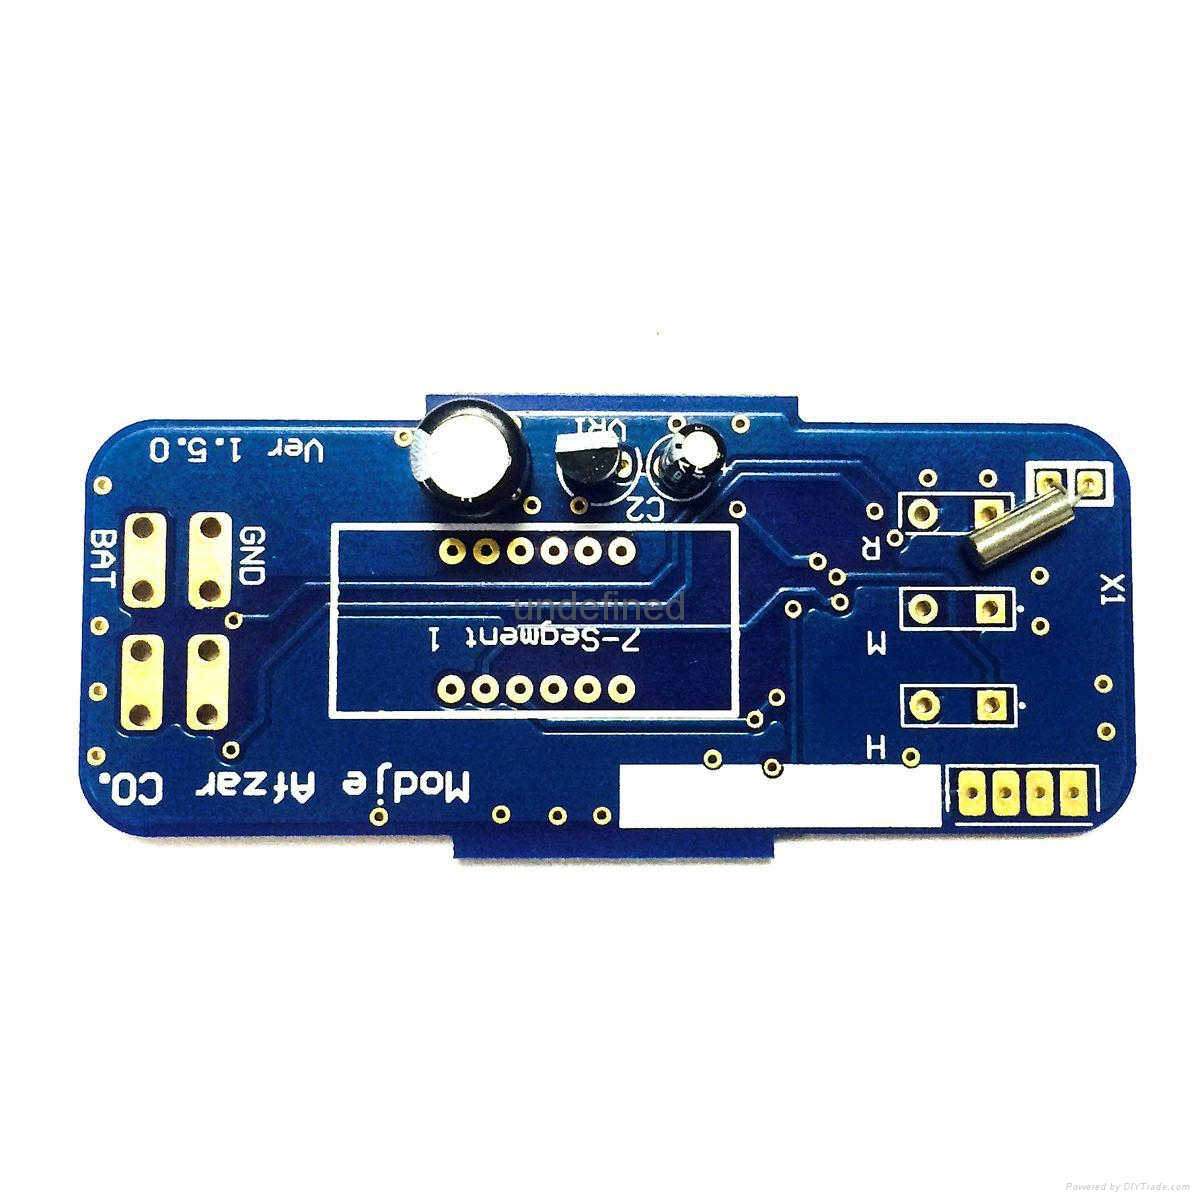 Immersion Gold PCB Assembly Board Immersion Gold PCB Assembly Board 2